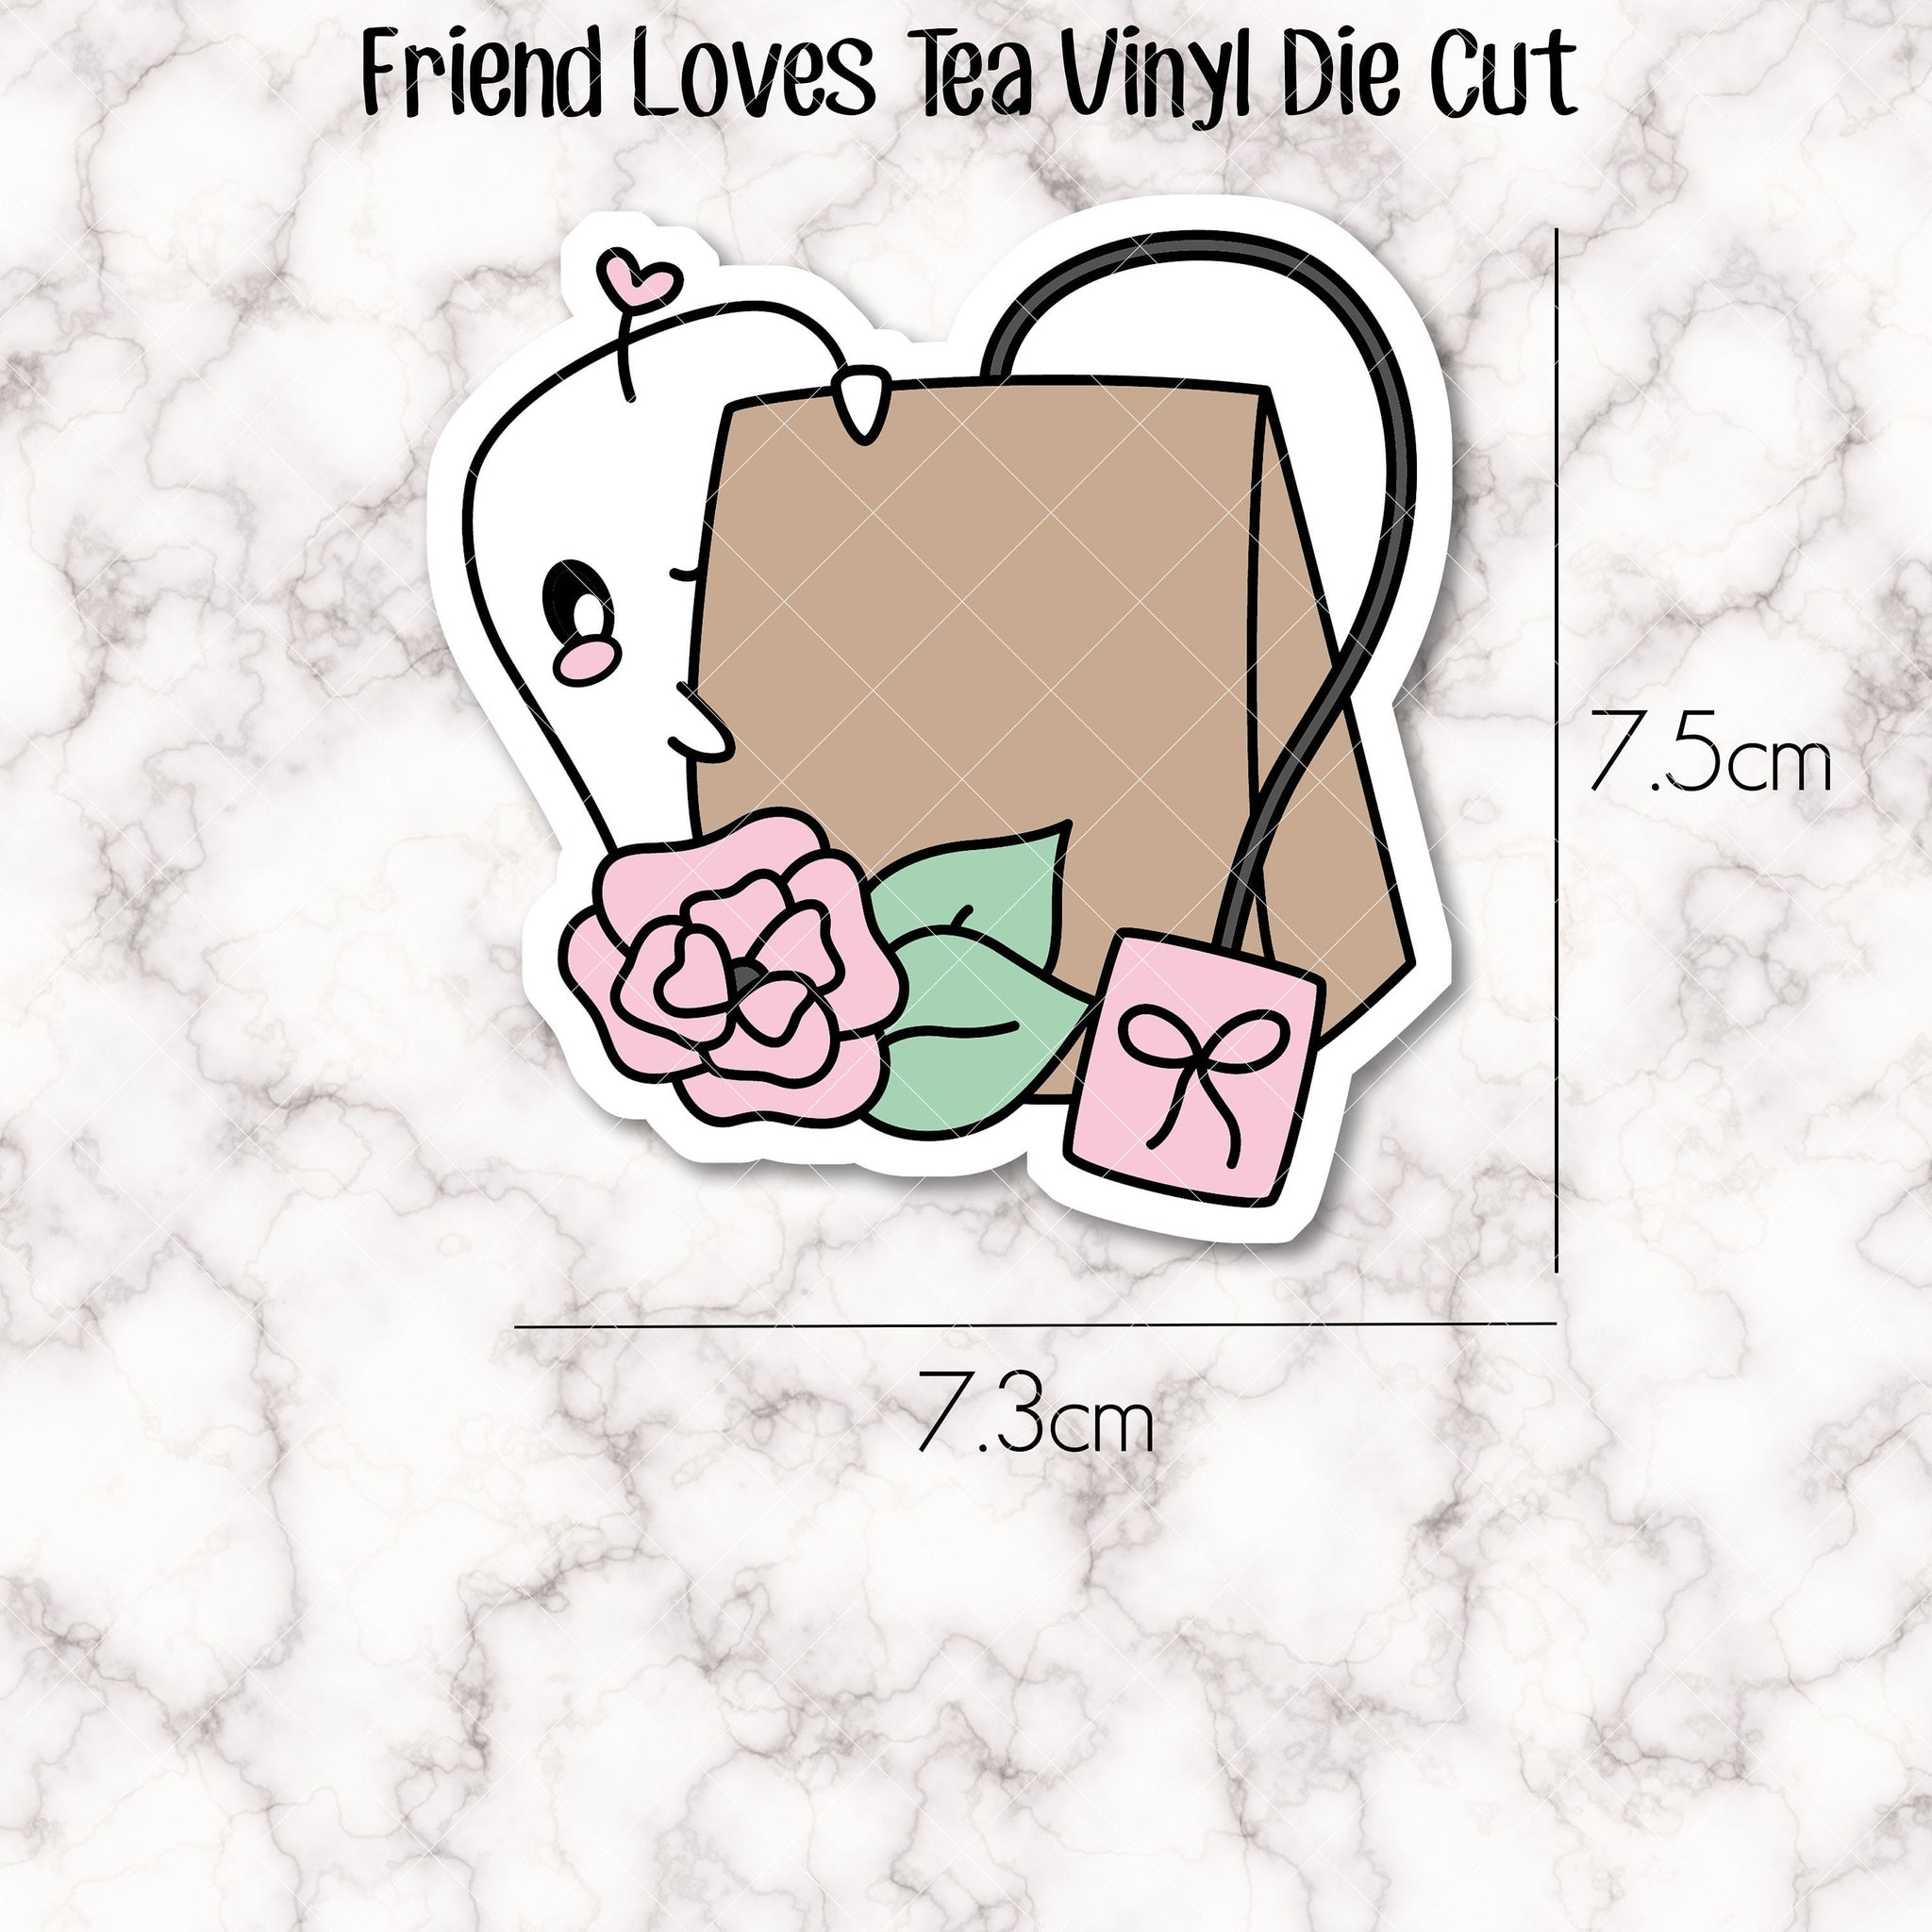 VINYL DIE CUT -  Friend Loves Tea - perfect accessory for your planner, travellers notebook, bookmark, laptop, water bottle etc